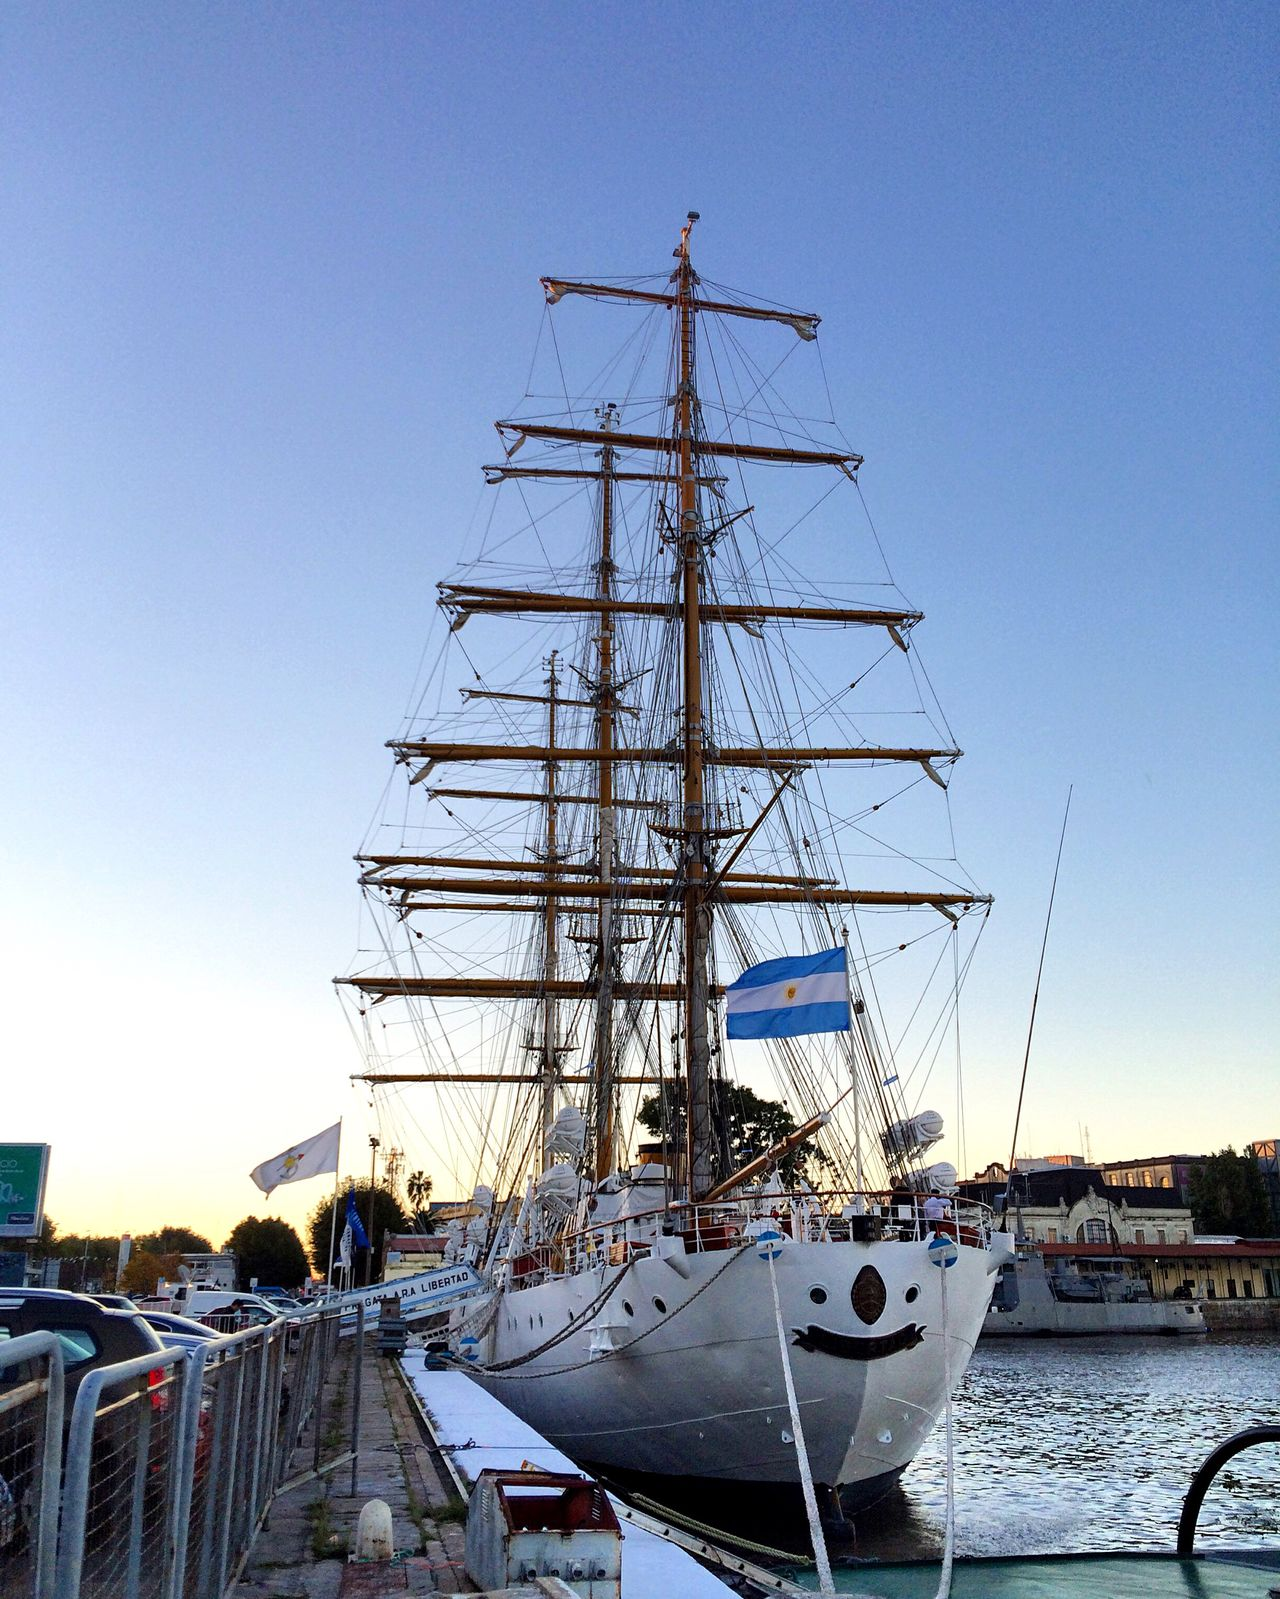 Fragata Libertad. Argentina Buenosaires Buenos Aires Fragata Libertad Frigate Tall Ship Sailing Ship Vessel Sailer Sailboat Sailing Boat Sails Sailing Sail Away, Sail Away Navy Navigation Argentina Photography Argentine Navy Marine Mast Port Harbour Harbor Harbour View Harbor View